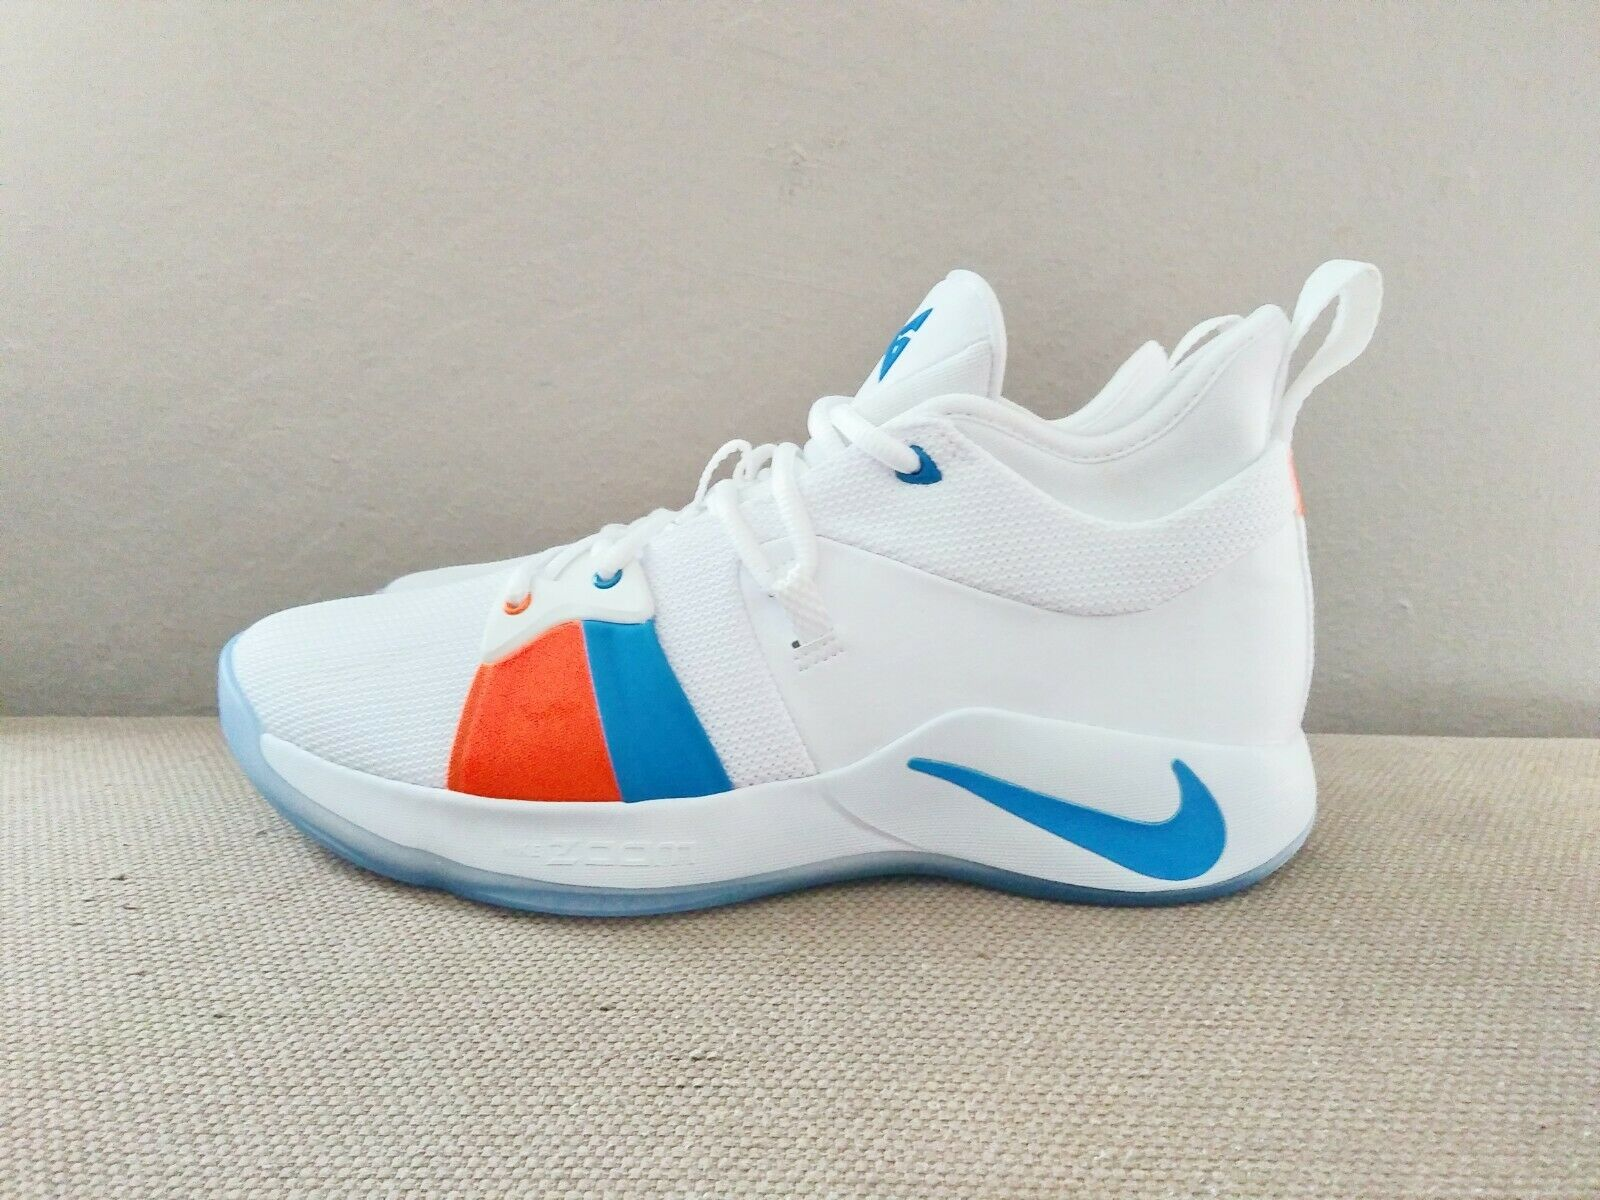 New DS Nike PG 2 The Bait II White bluee orange men sz 10 10.5 11 11.5 12 or 13